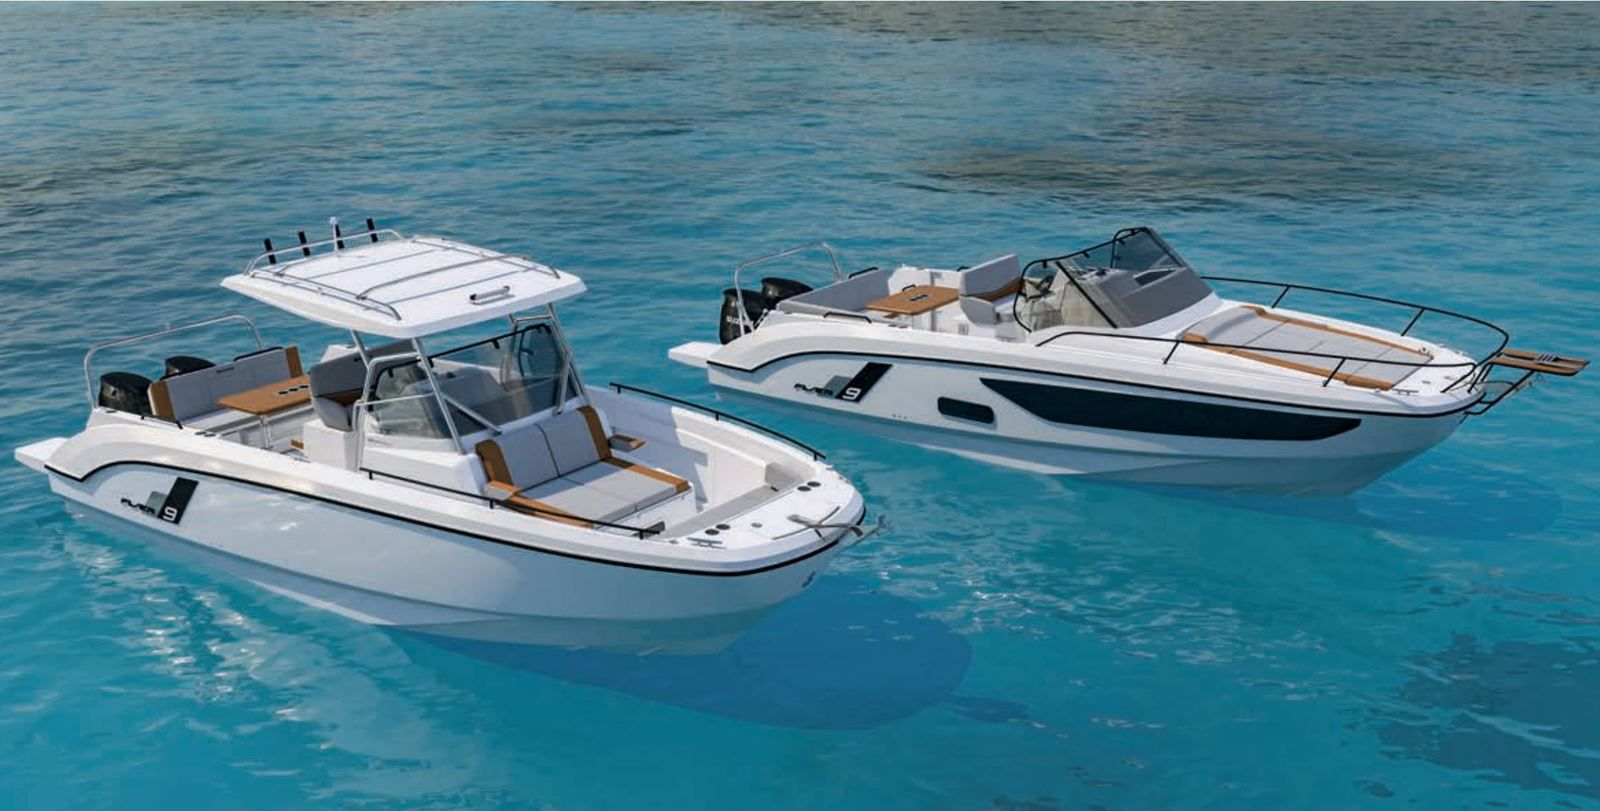 The new Bénéteau Flyer 9 is available in 2 versions: SpaceDeck and SunDeck.